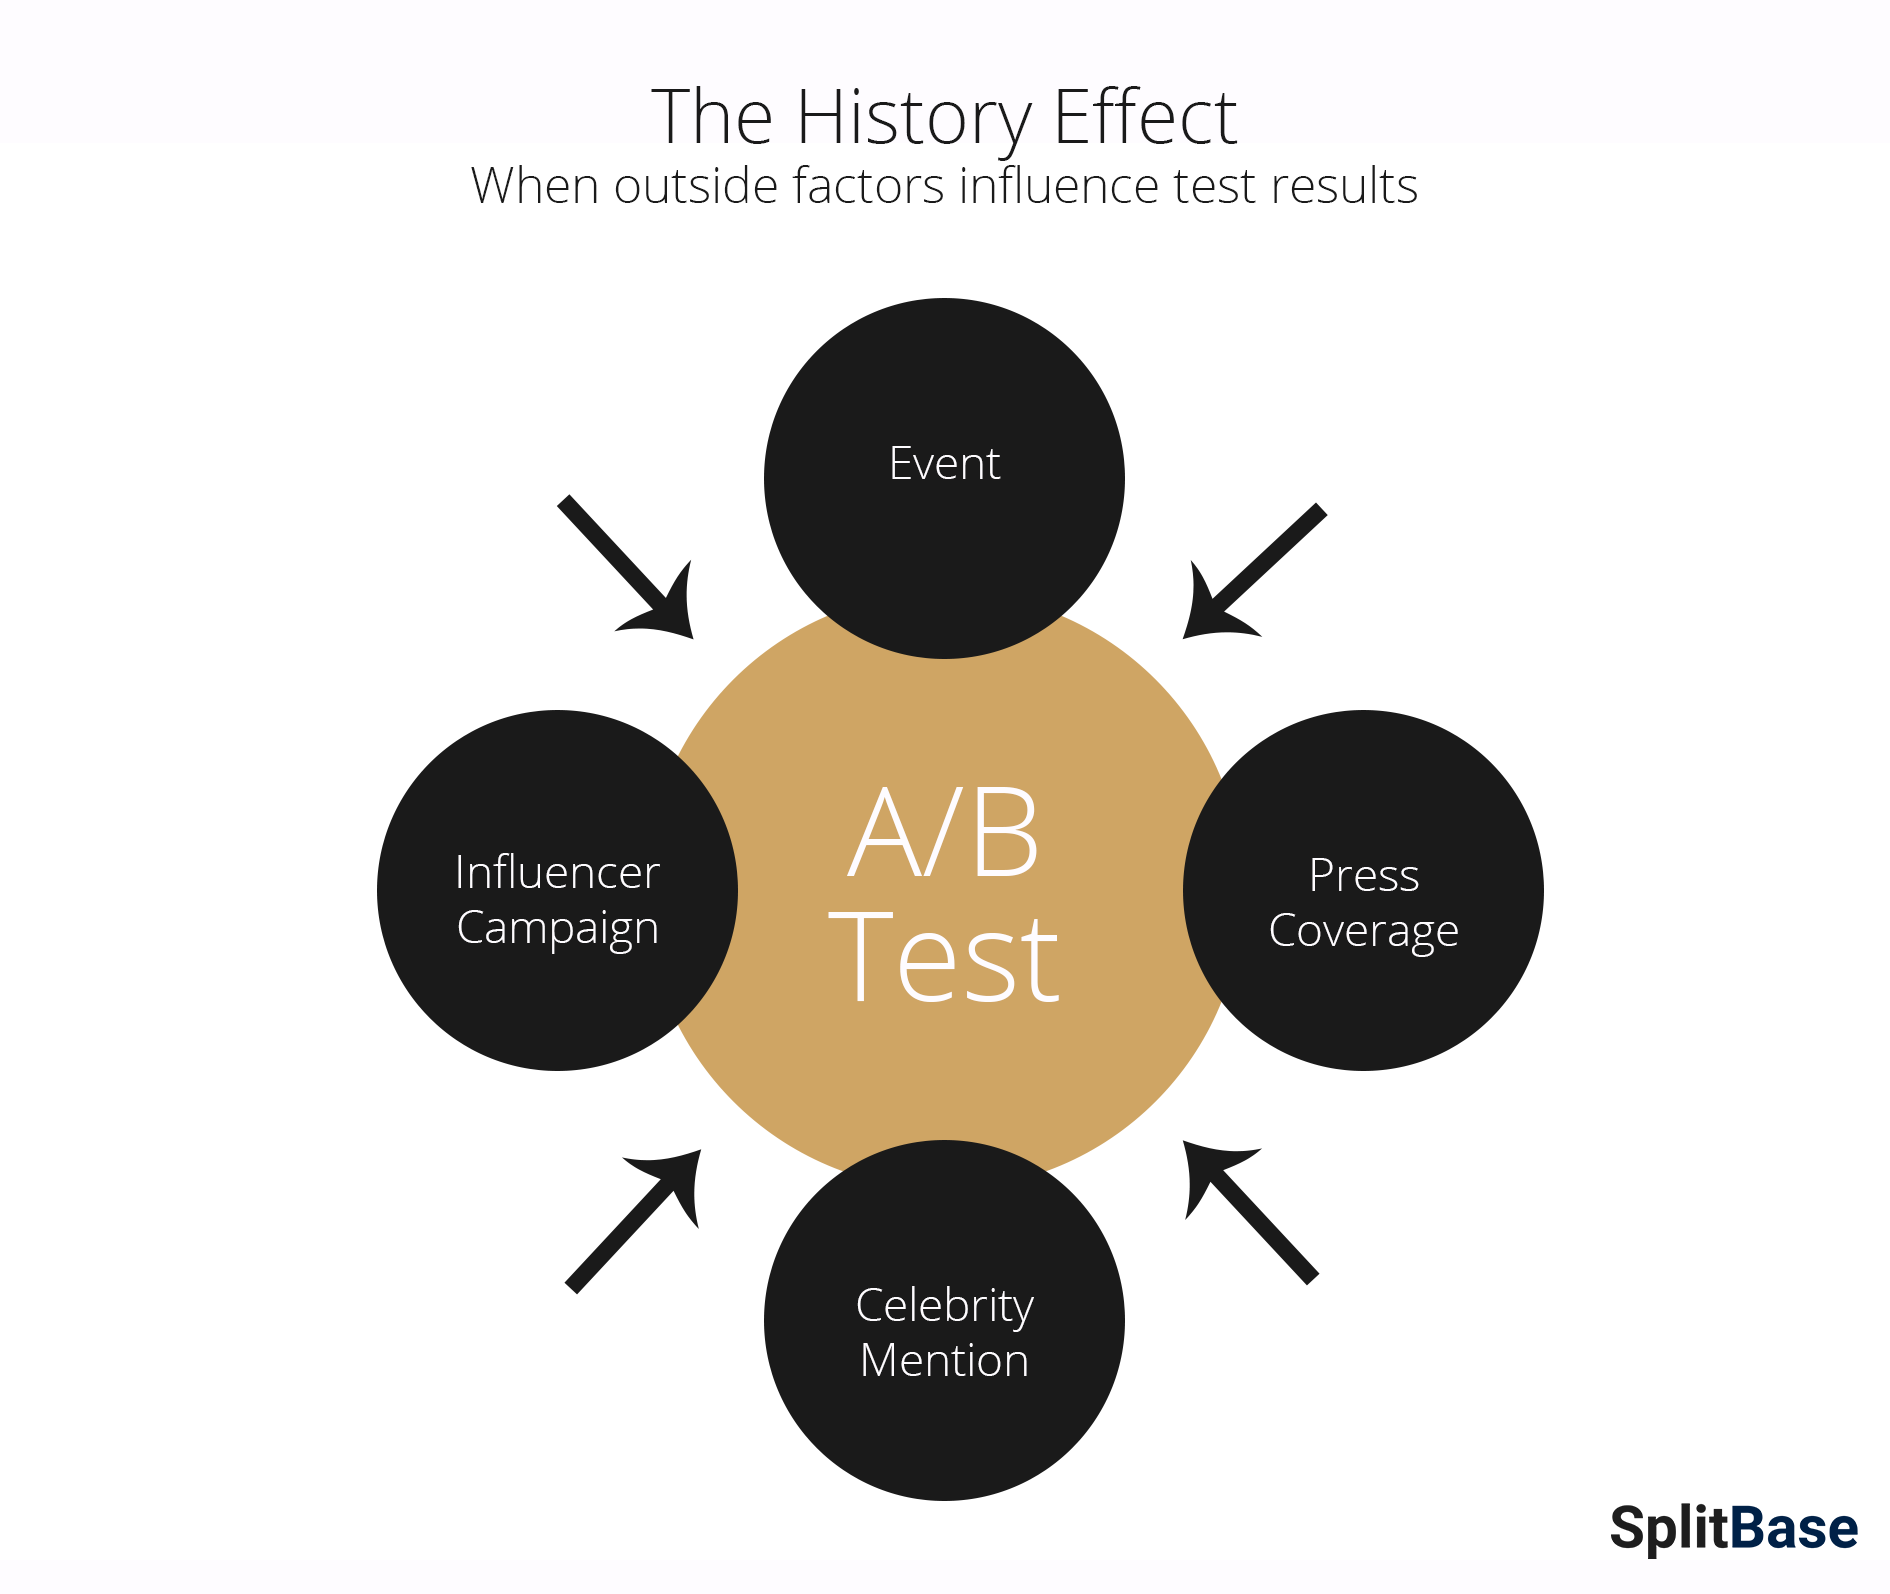 The History Effect in A/B Testing